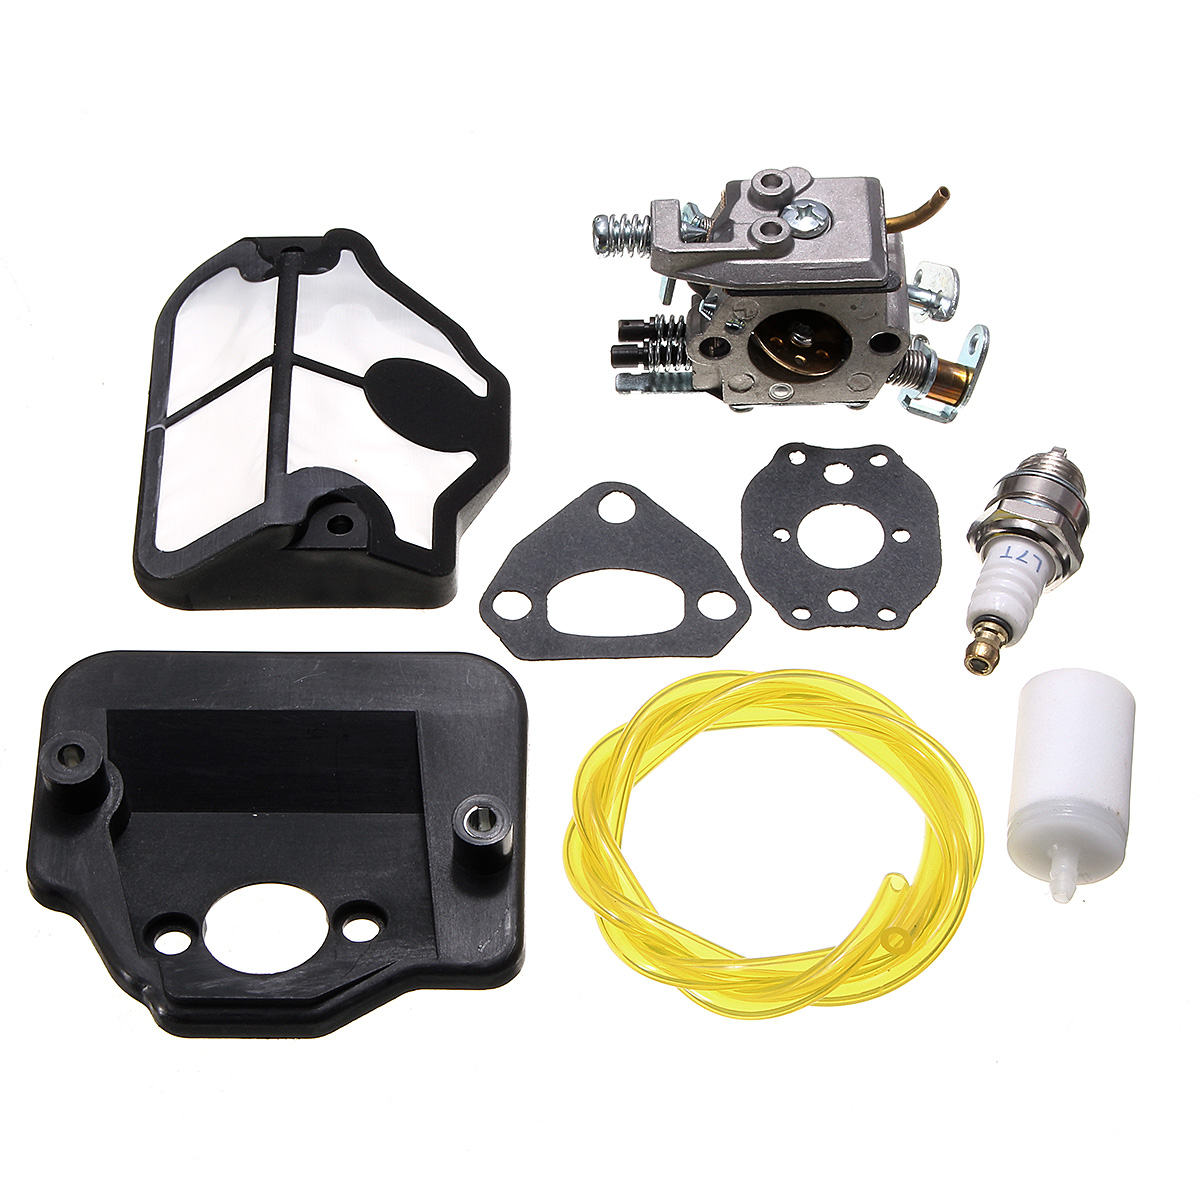 Carburetor for Husqvarna 36 41 136 137 141 142 Chainsaw Zama C1Q-W29E Carb